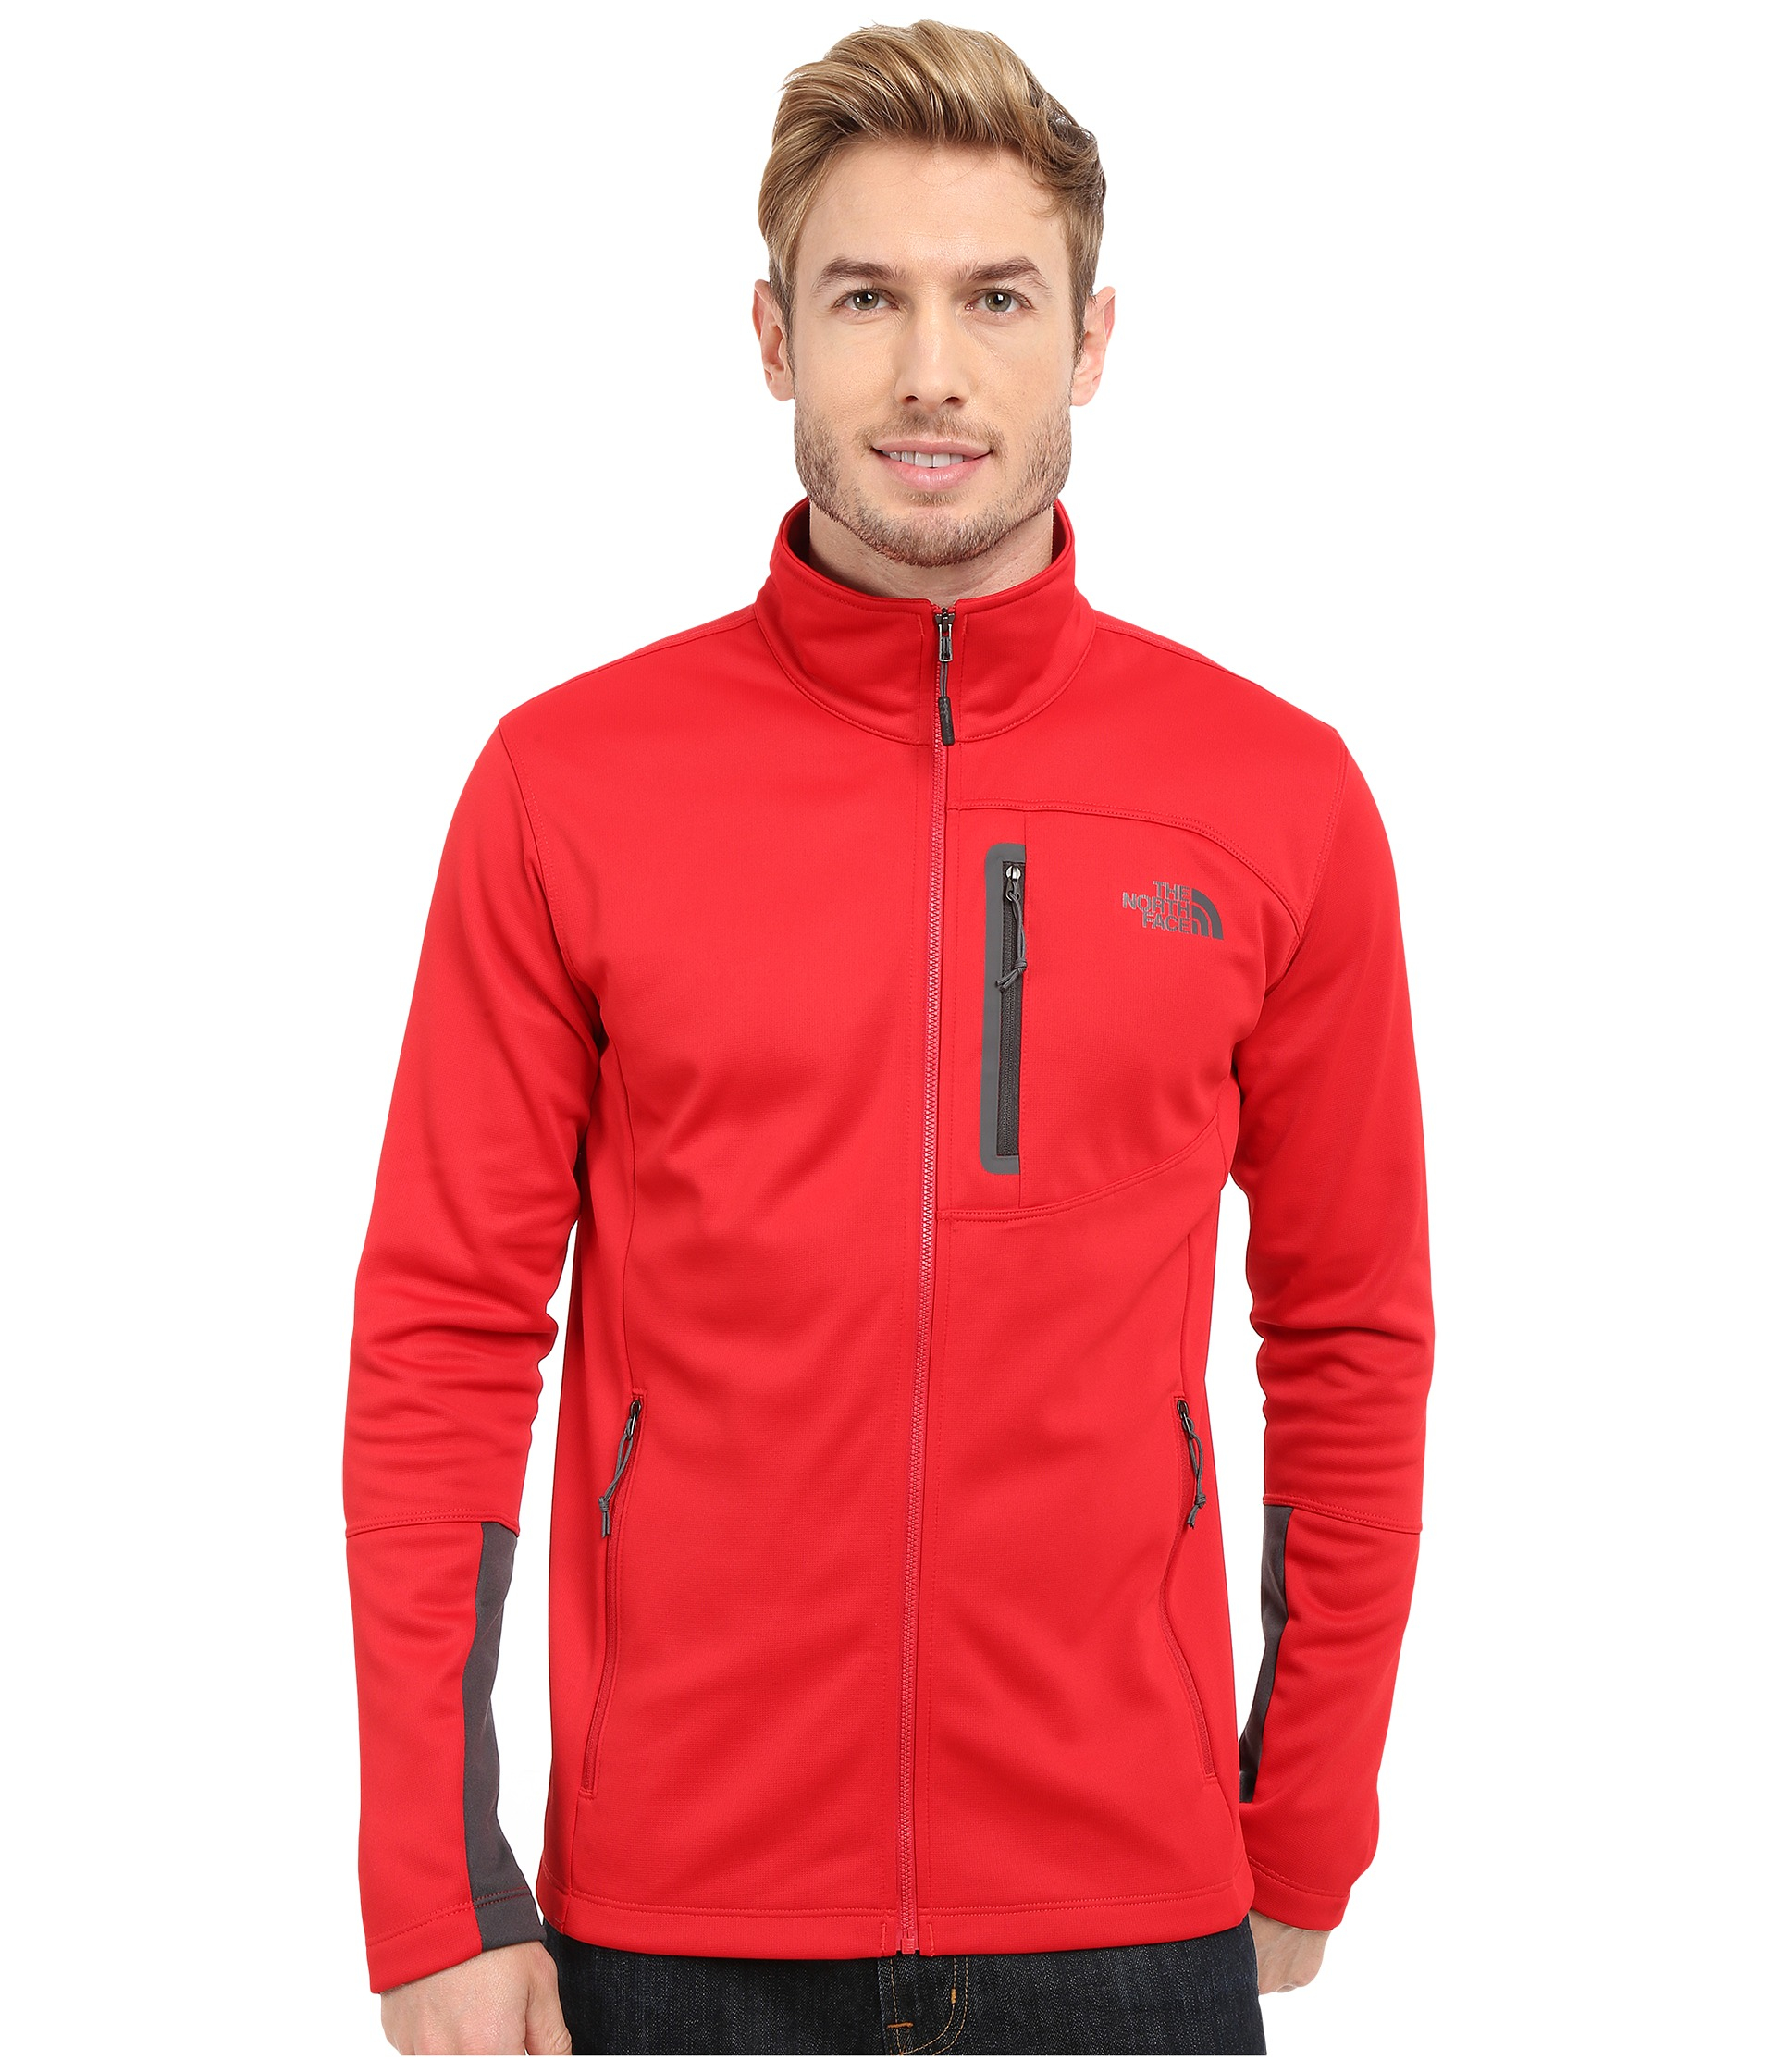 cd9e737b1 Men's Red Canyonlands Full Zip Sweatshirt